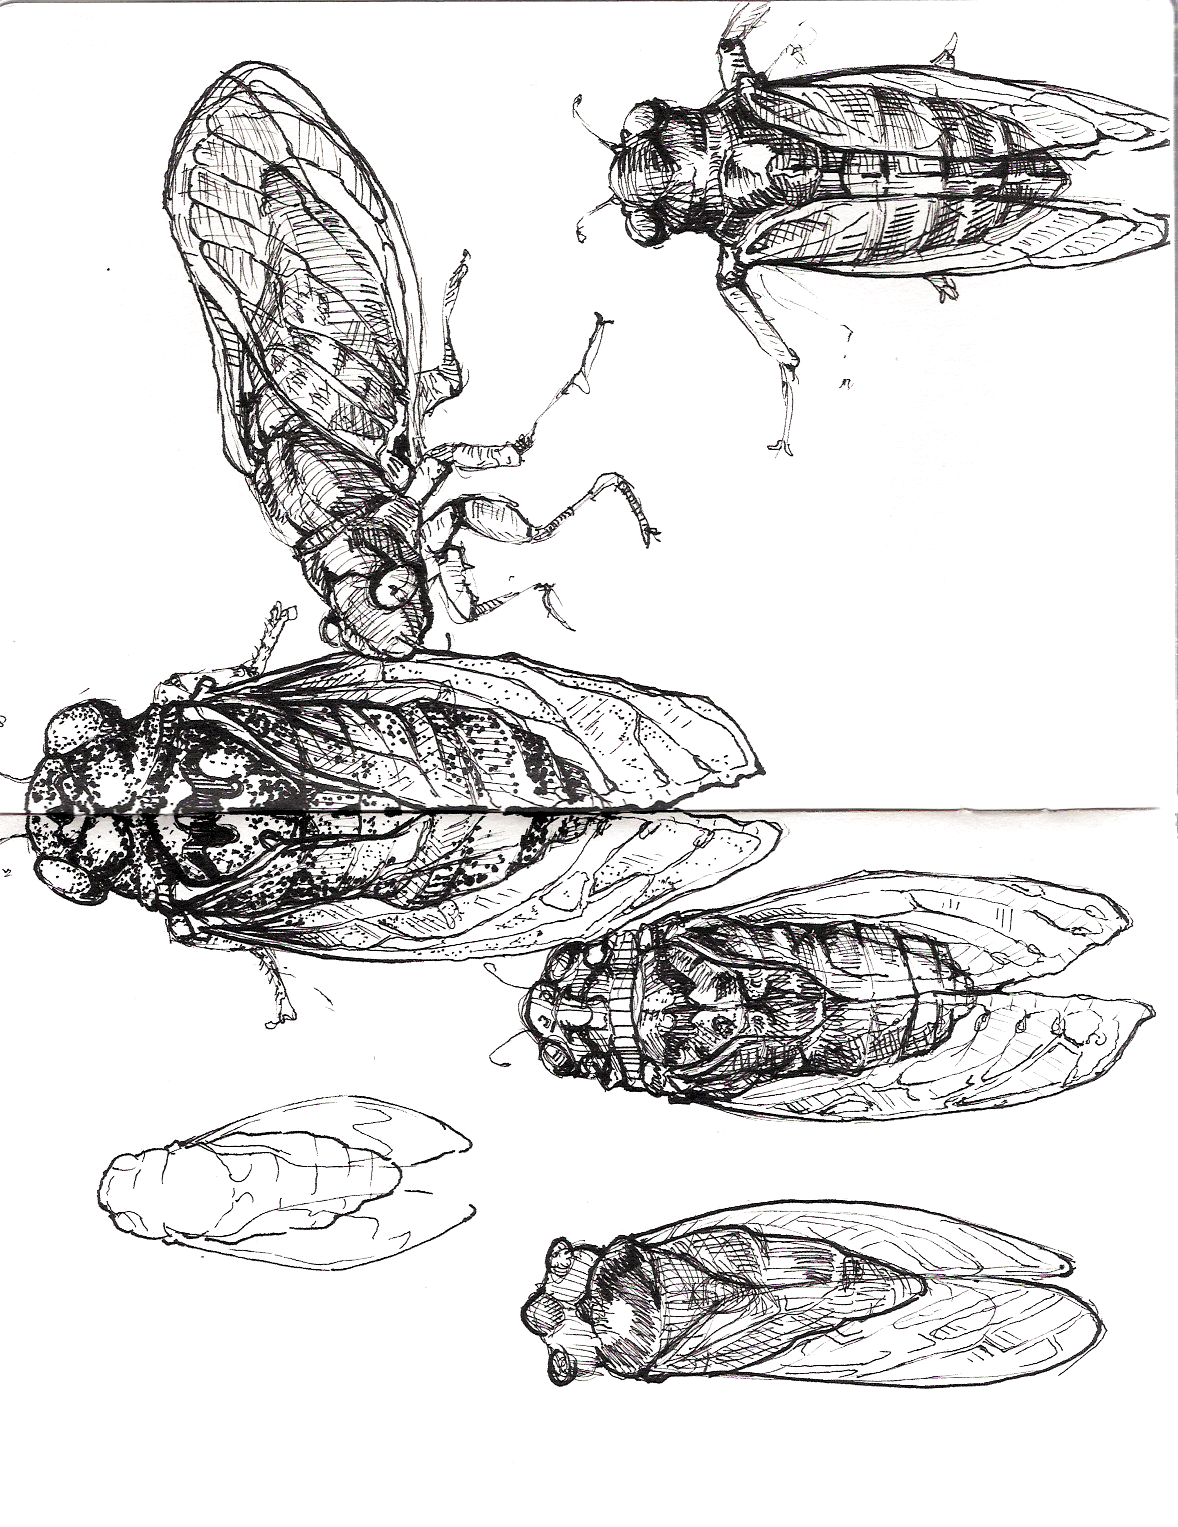 a study of cicada Total and methyl mercury contents and distribution characteristics in cicada, cryptotympana atrata (fabricius) dongmei zheng • zhongsheng zhang.